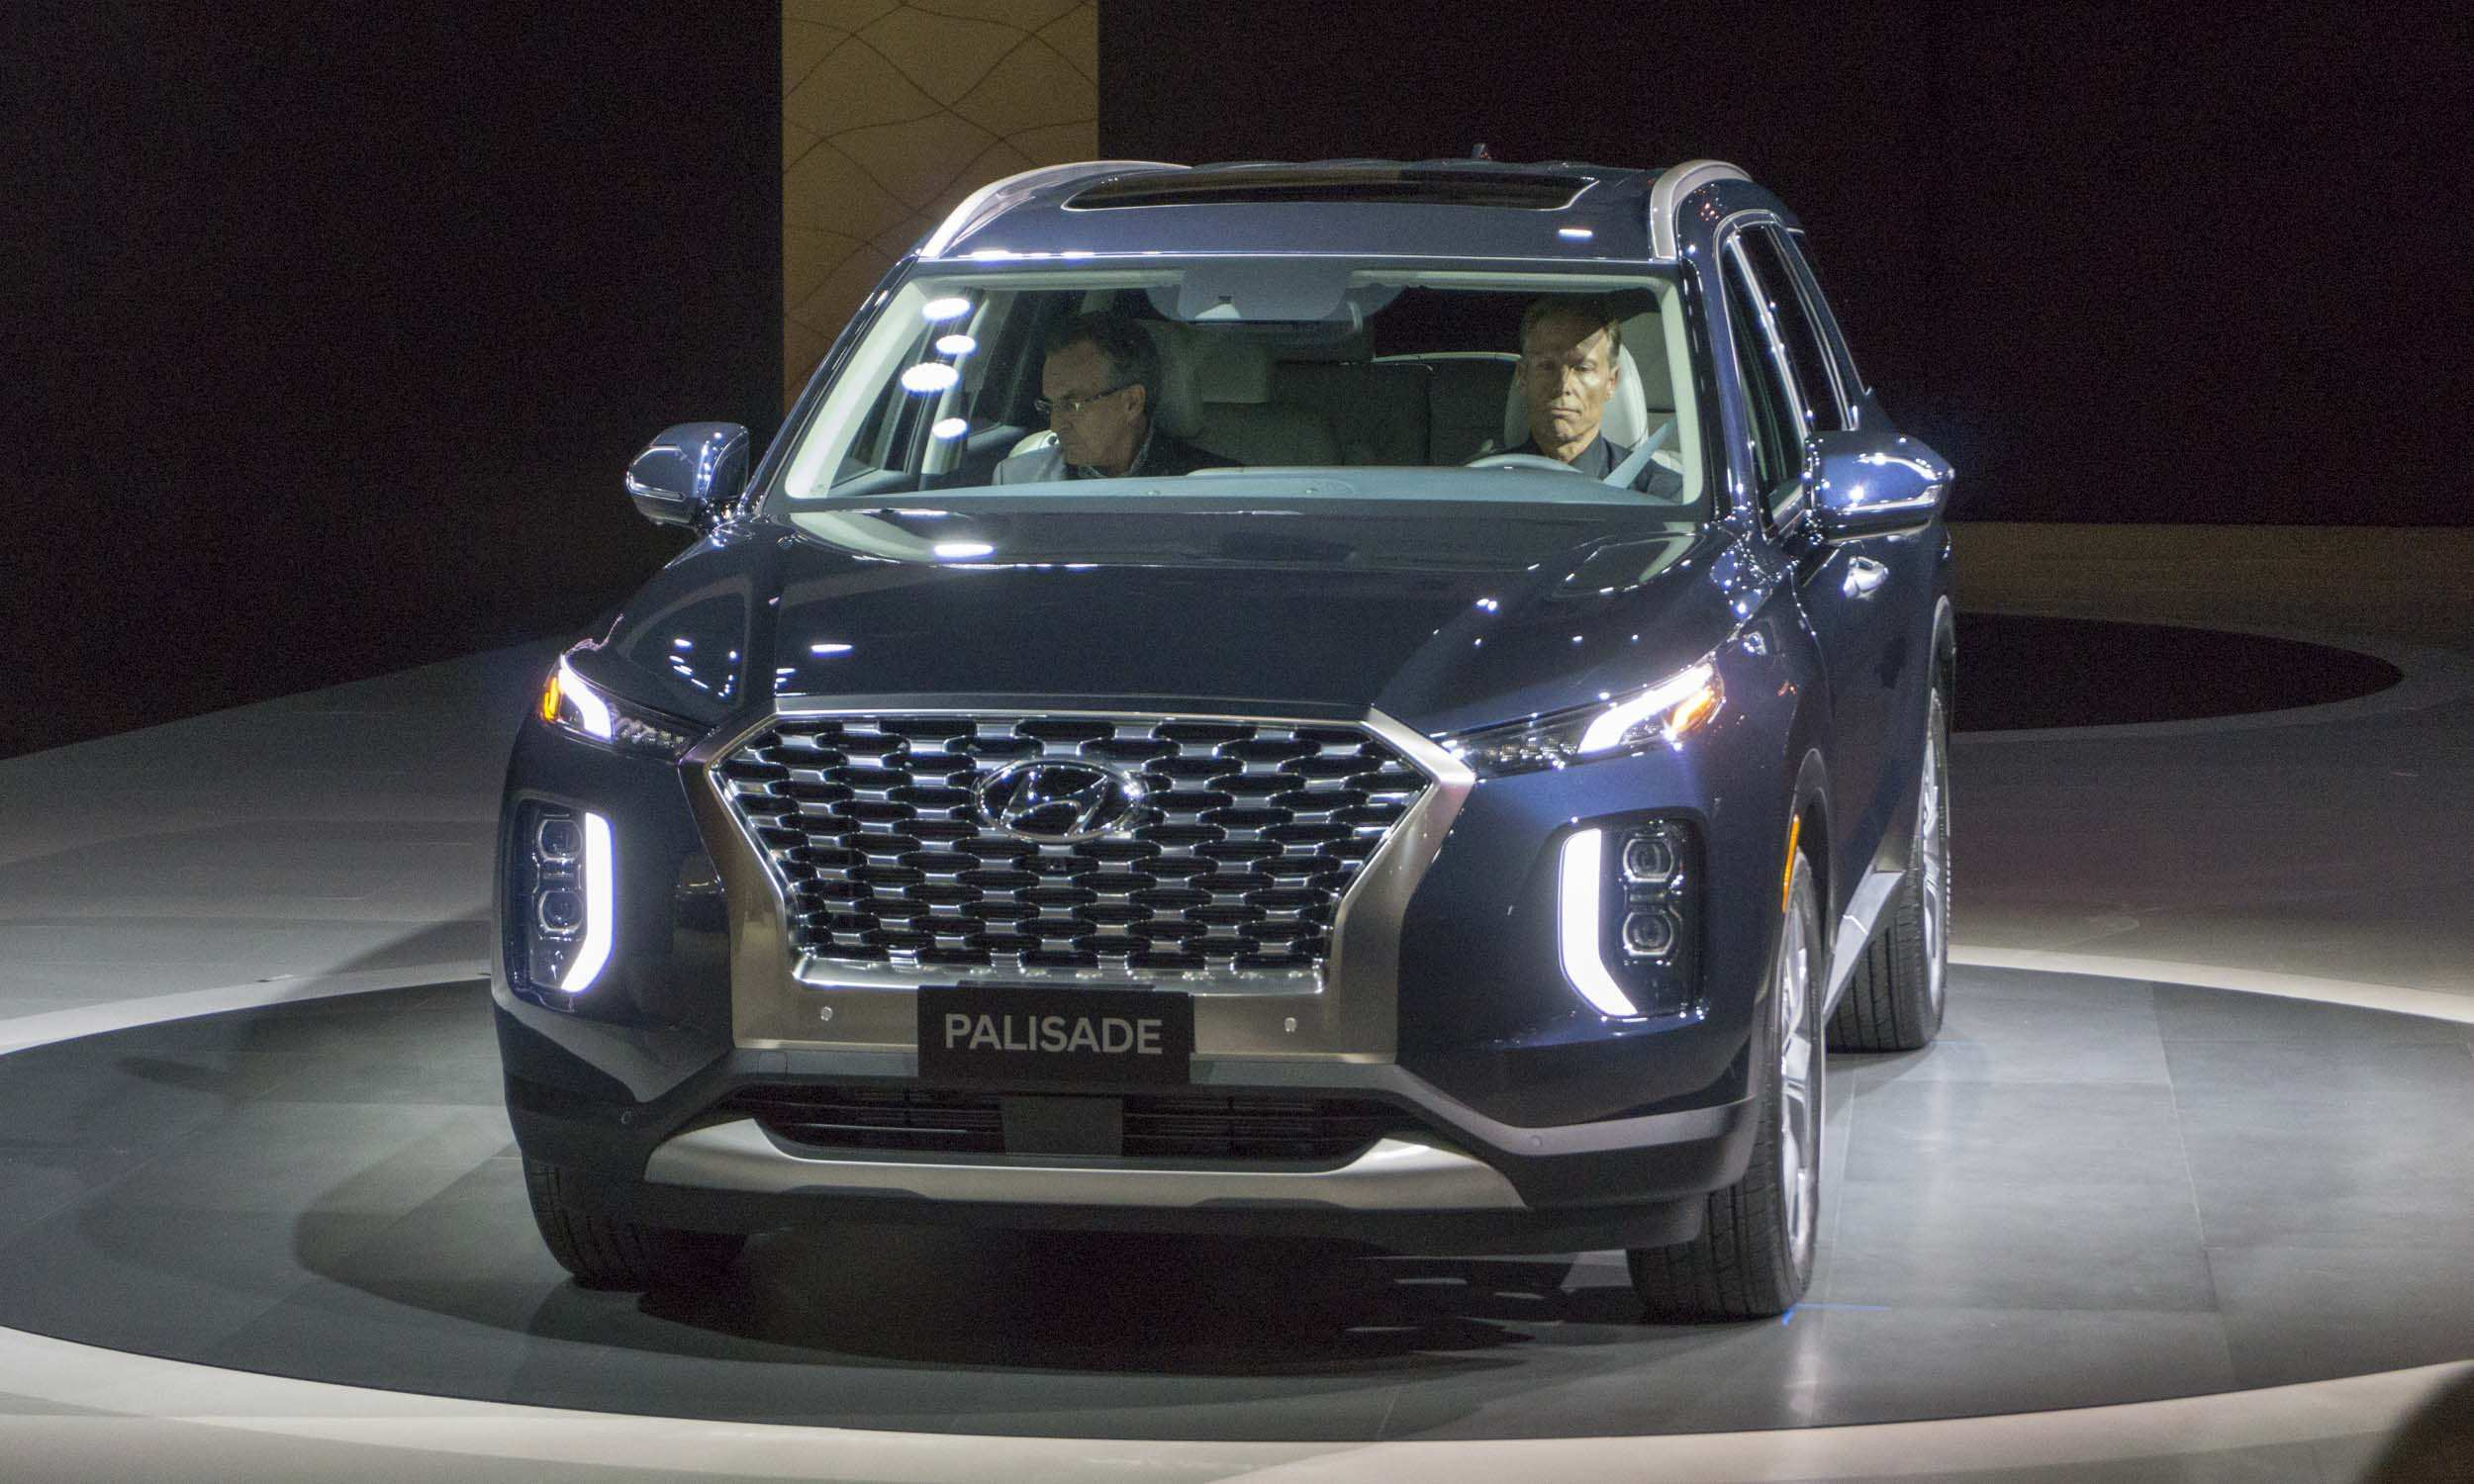 81 The Best 2020 Hyundai Palisade White Review And Release Date